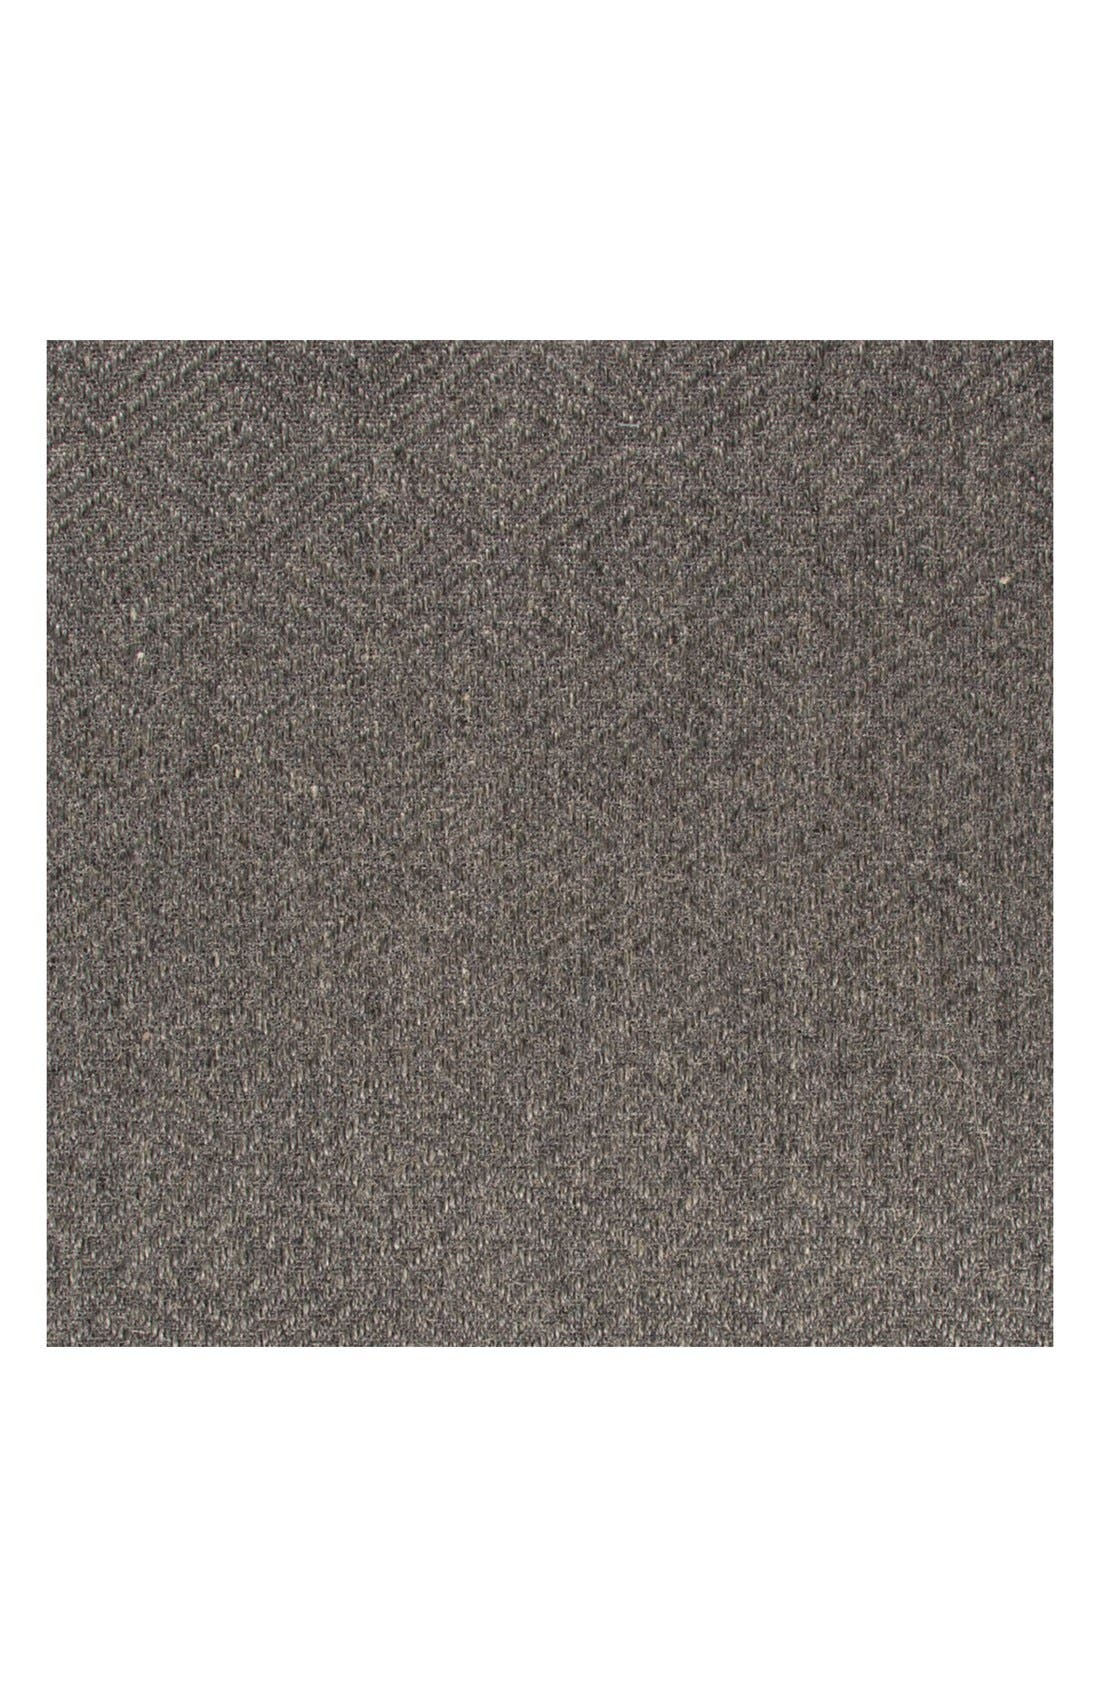 Alternate Image 3  - Jaipur 'Tobago Naturals' Hand Woven Rug